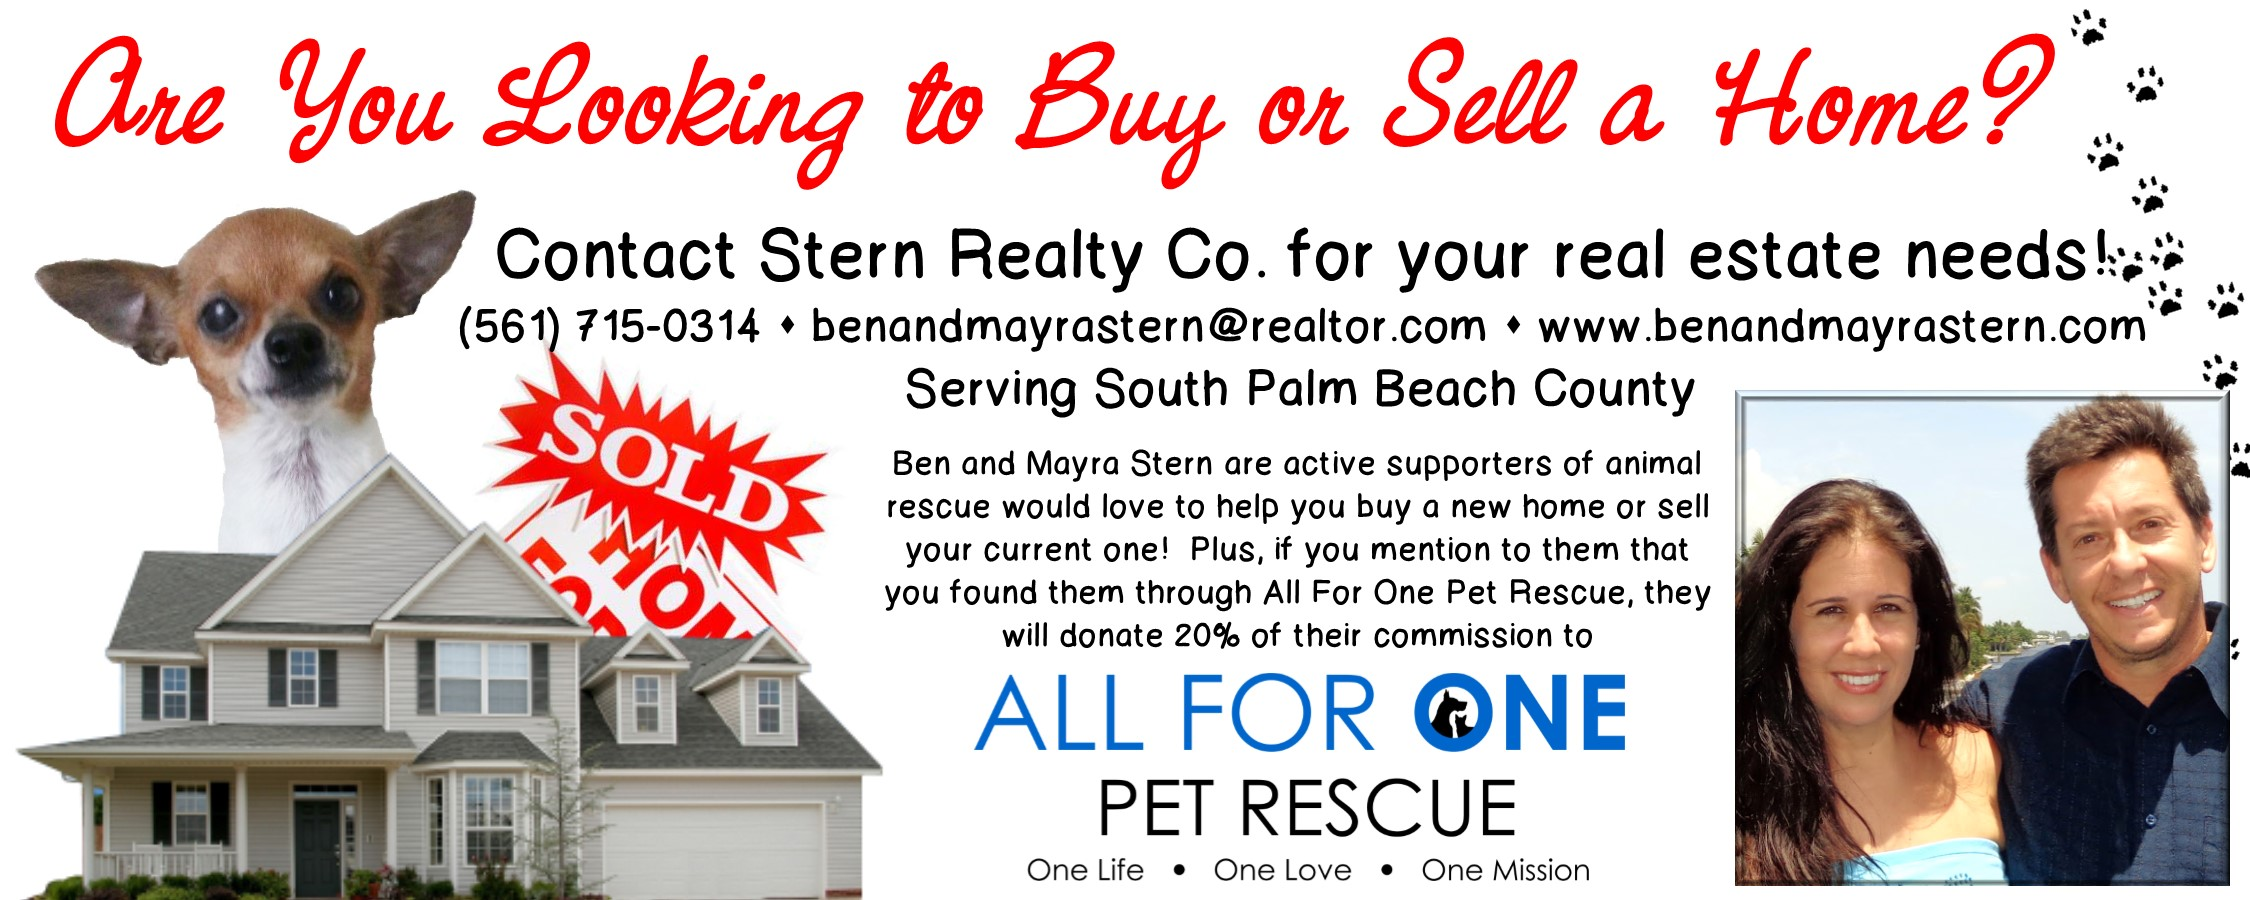 Stern Realty Co.